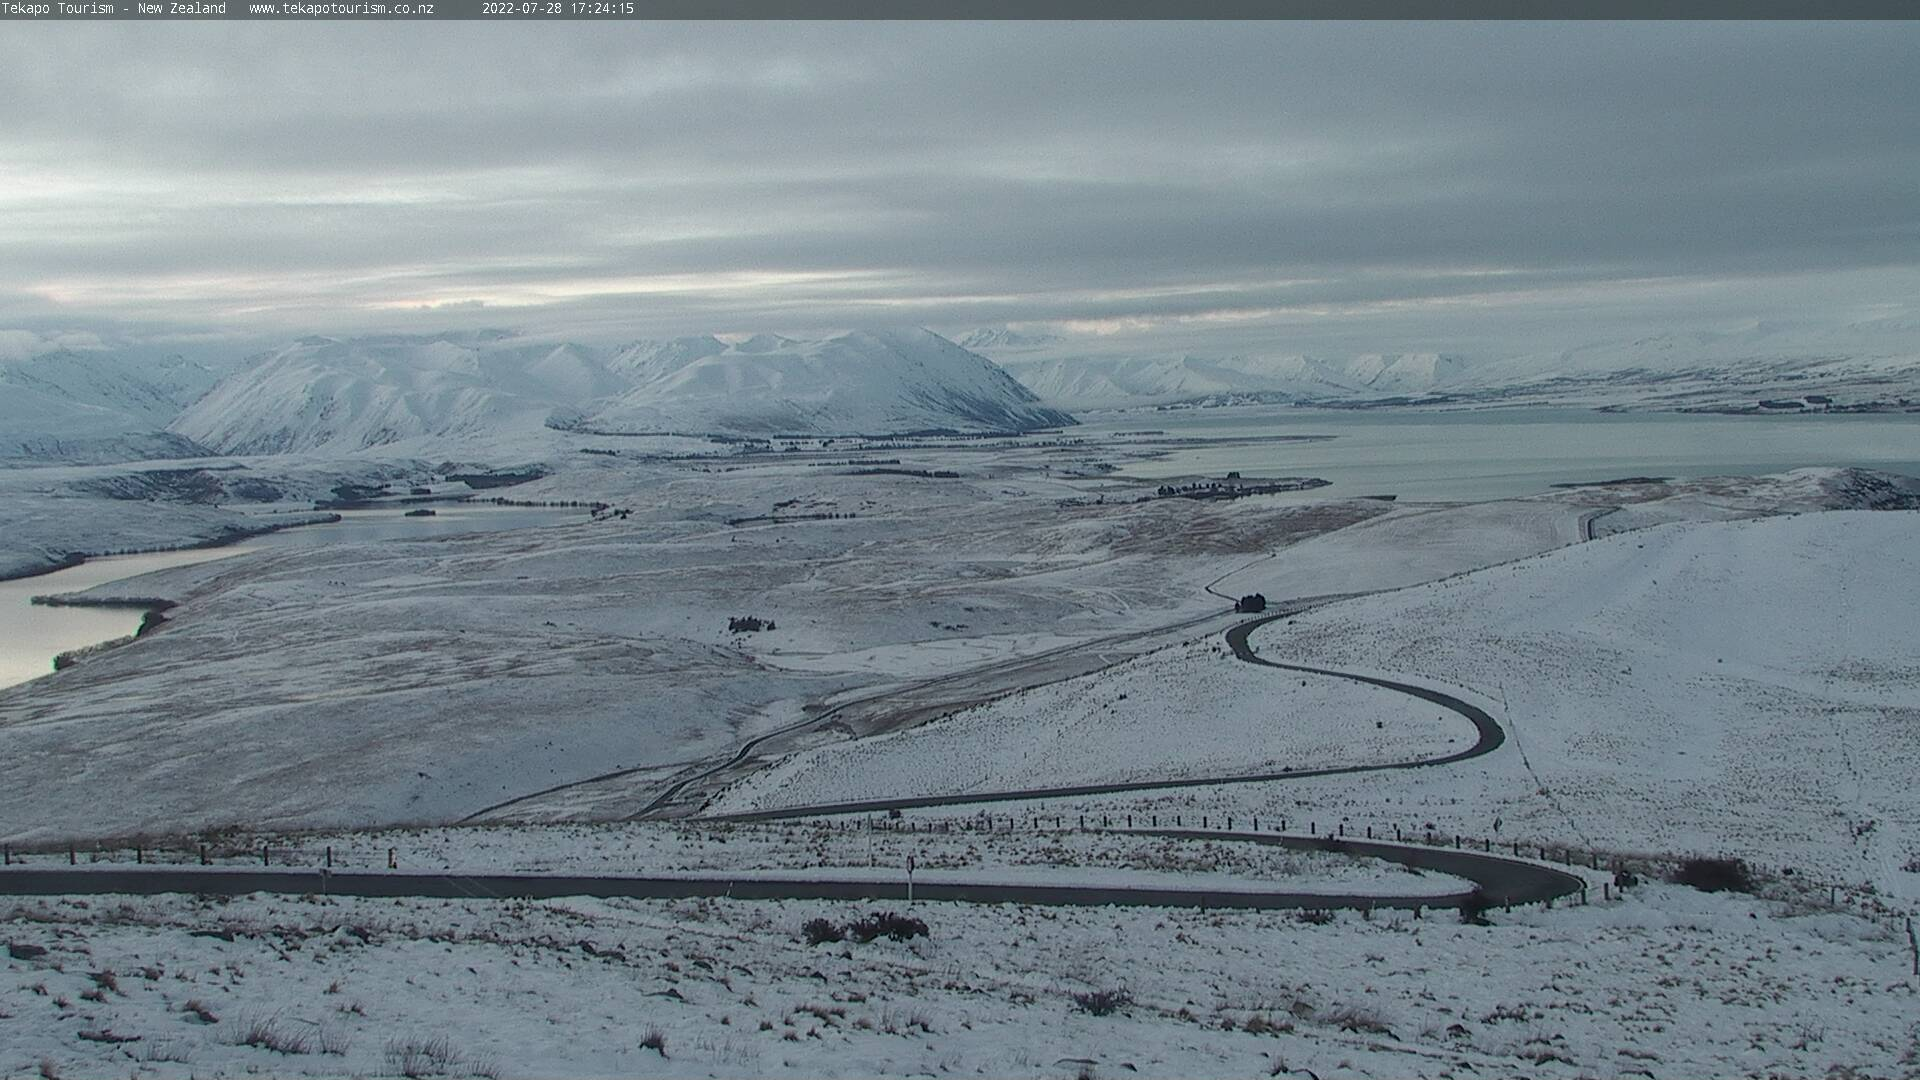 Tekapo Tourism webcam. North-West view